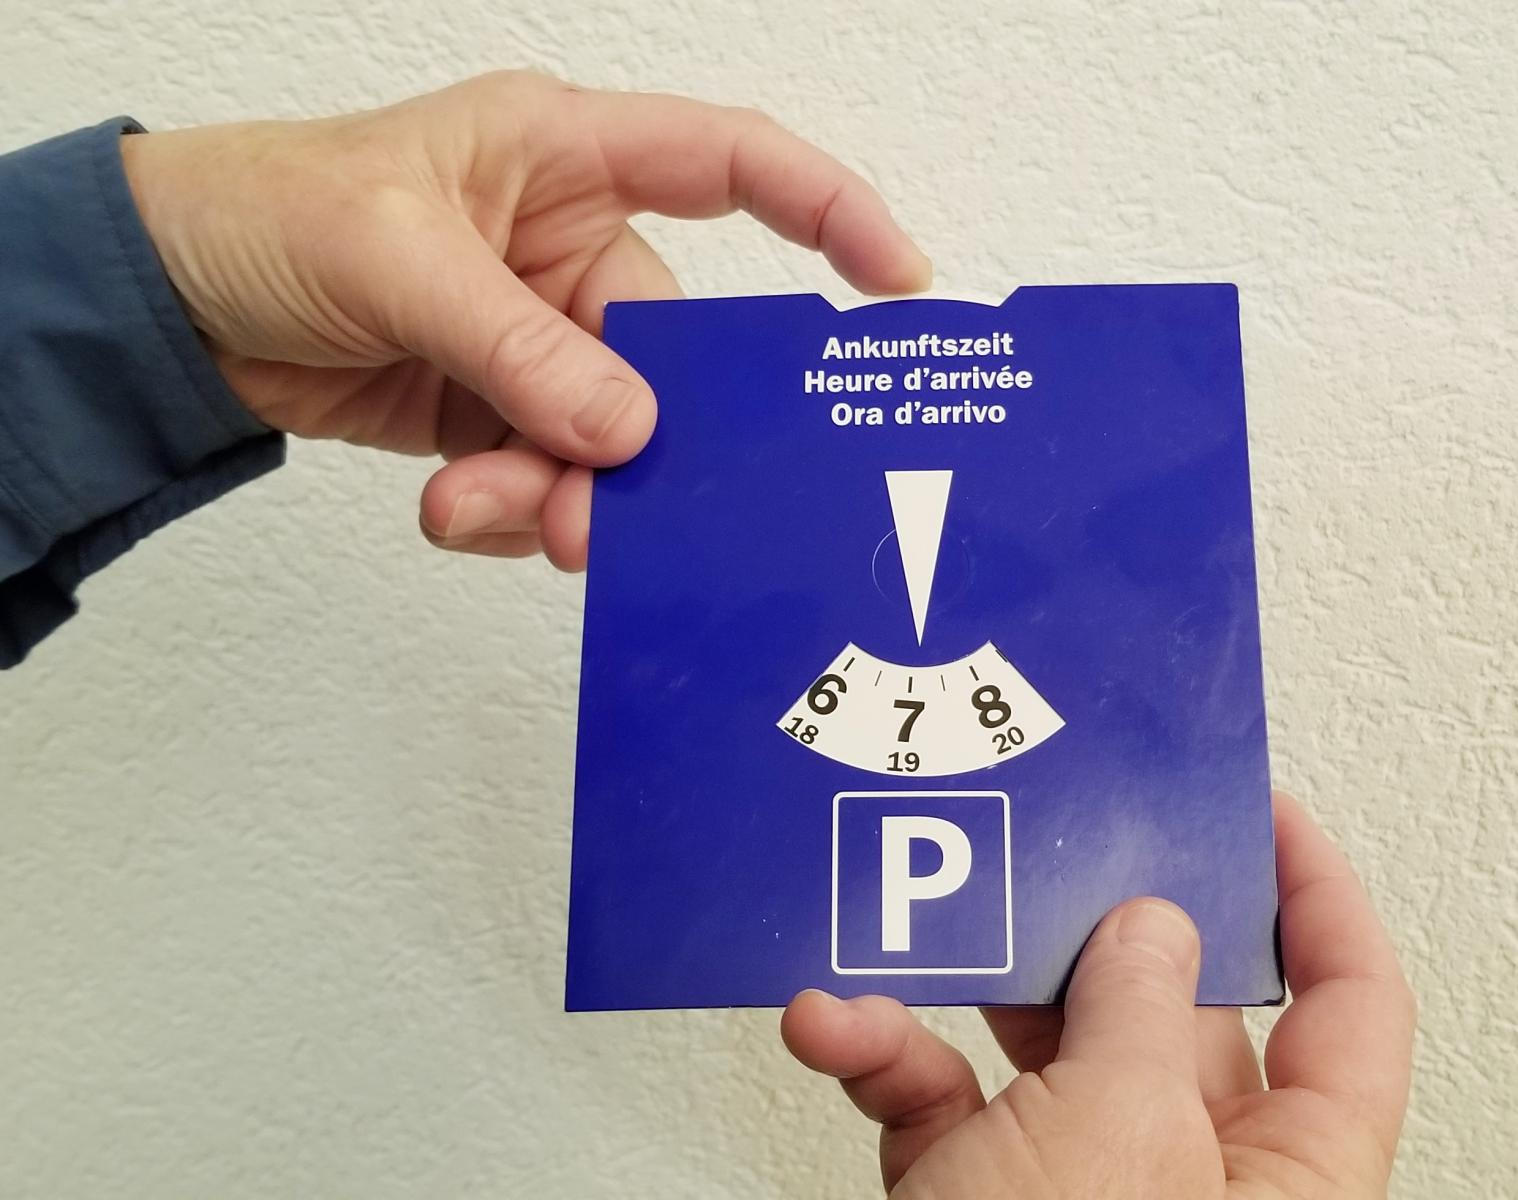 Swiss parking time indicator